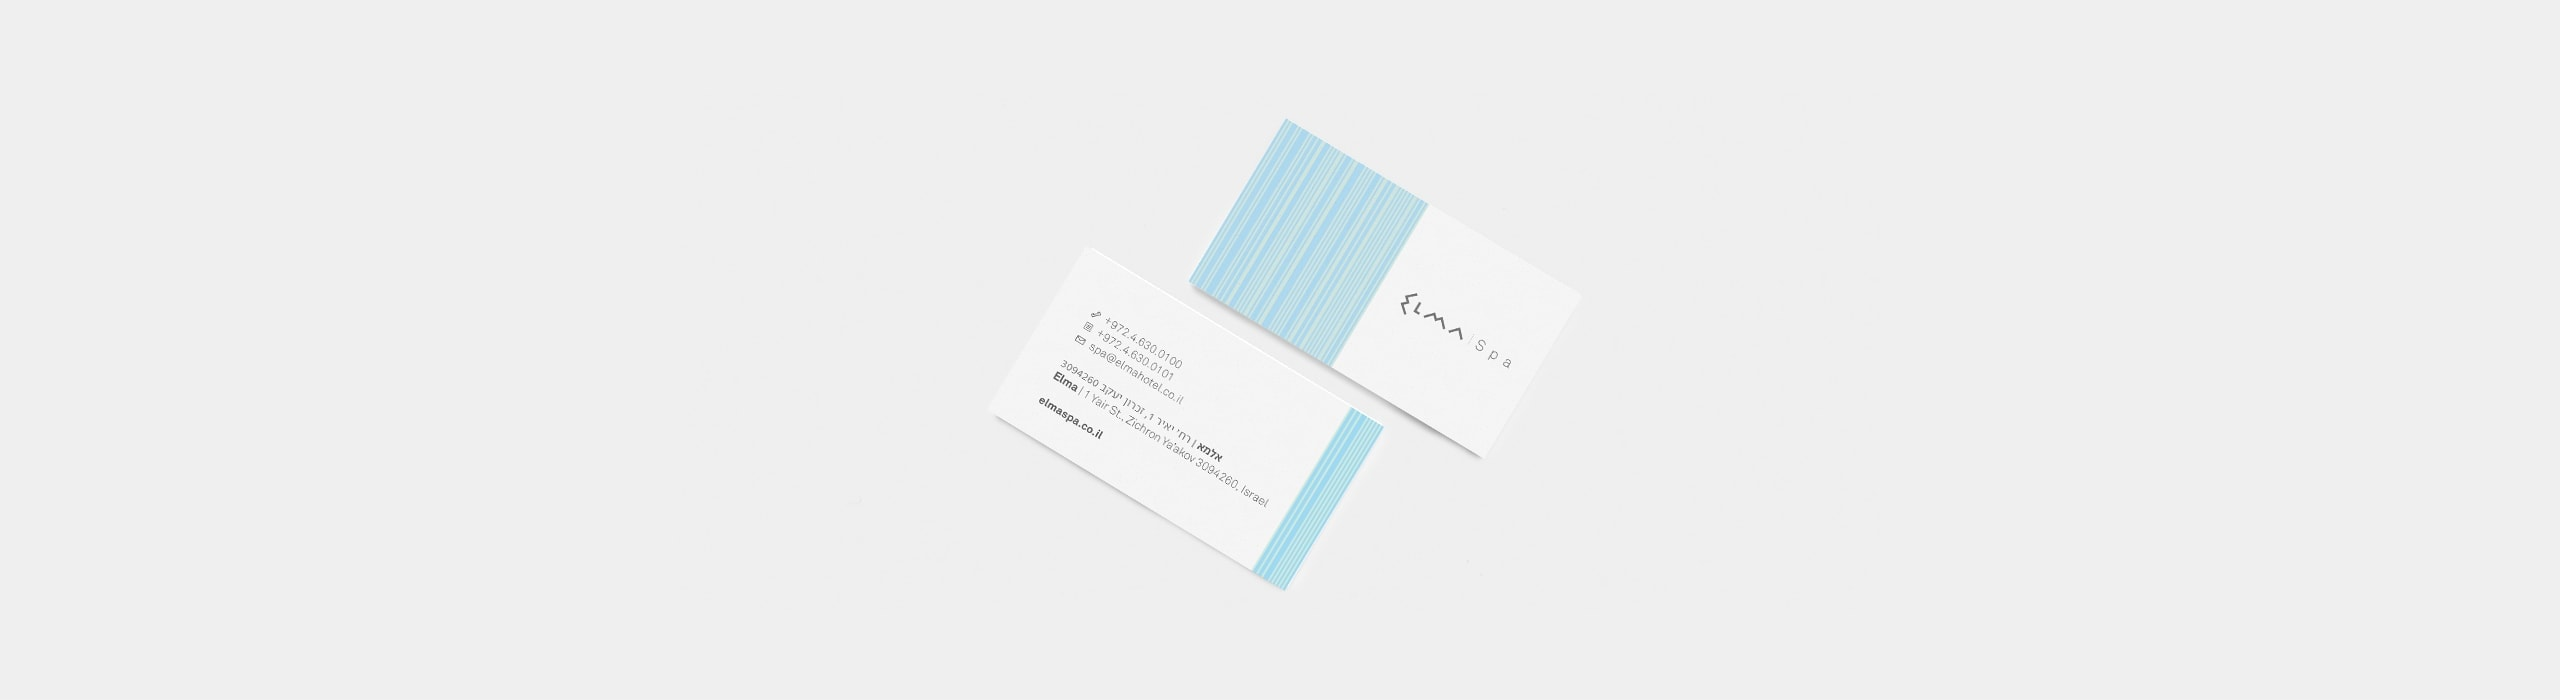 Elma - natie-elma-spa-business-cards - Natie Branding Agency